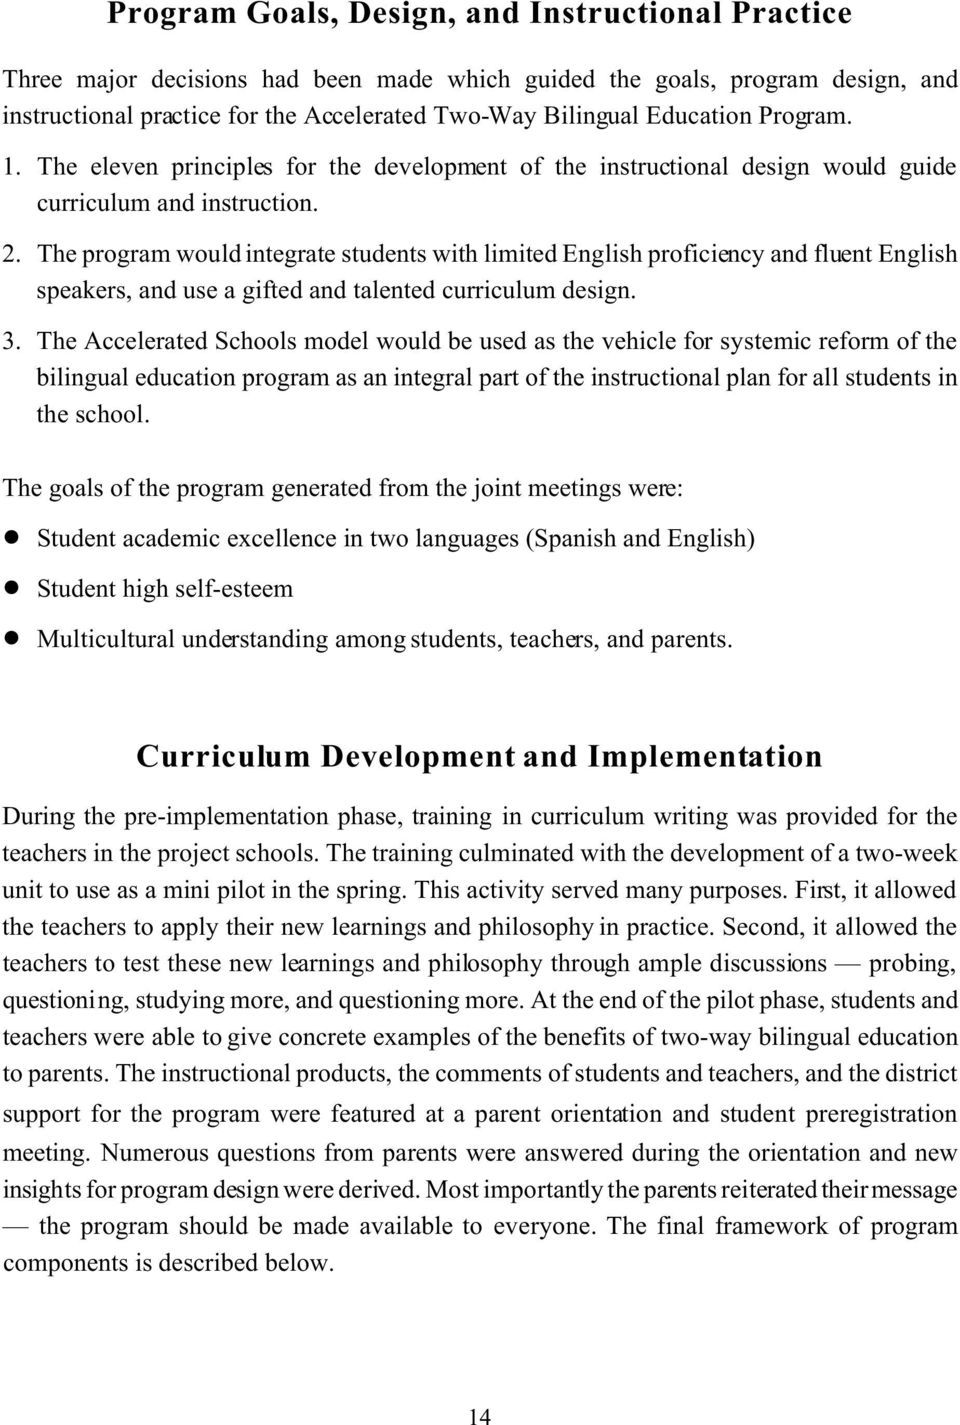 The program would integrate students with limited English proficiency and fluent English speakers, and use a gifted and talented curriculum design. 3.